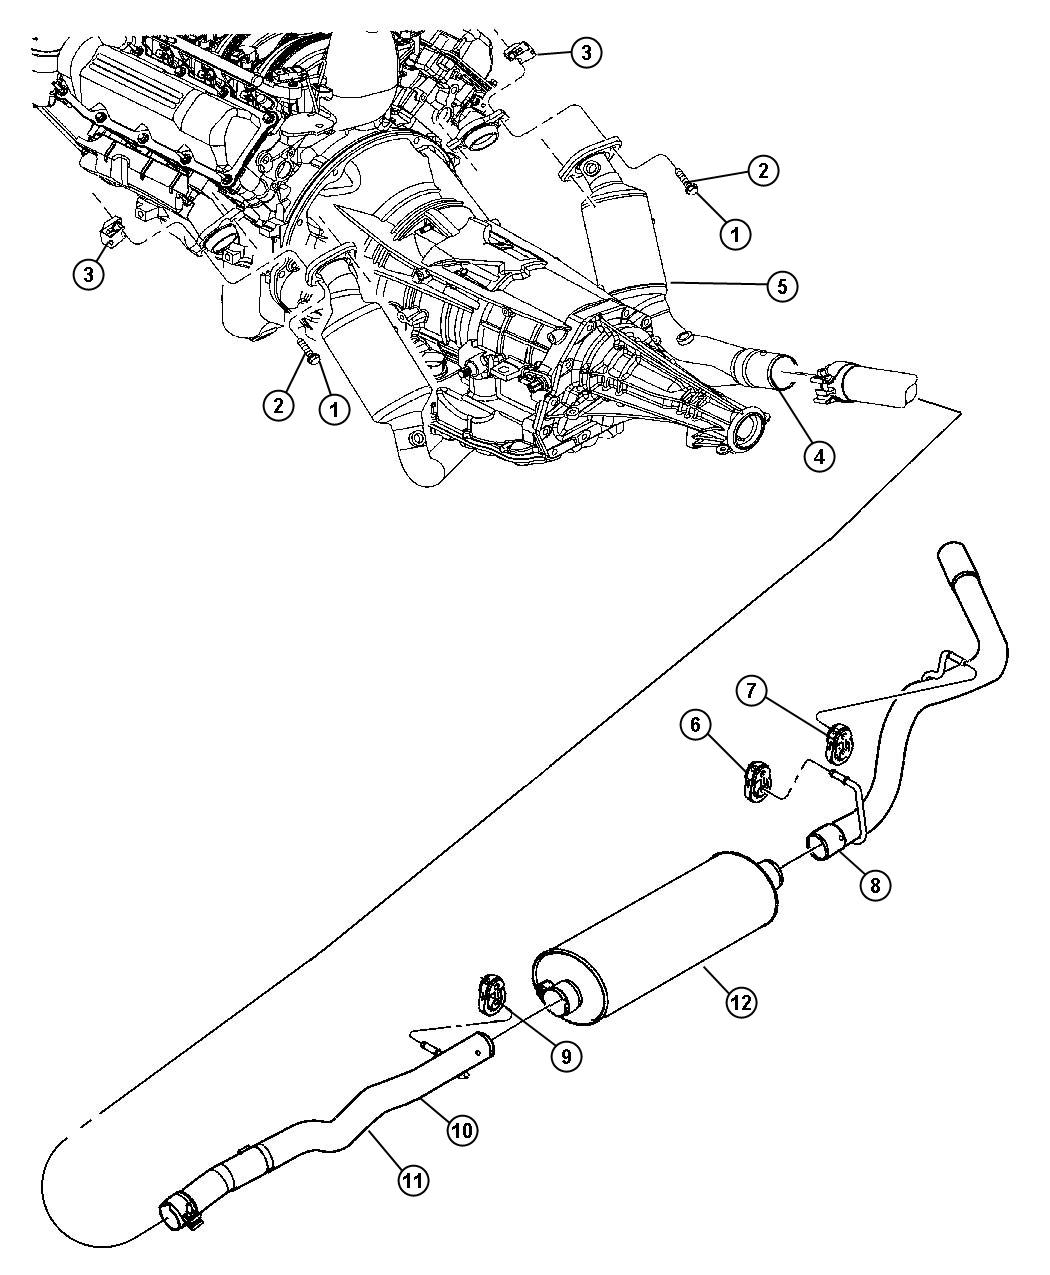 Dodge Dakota Used For Pipe And Resonator Exhaust System